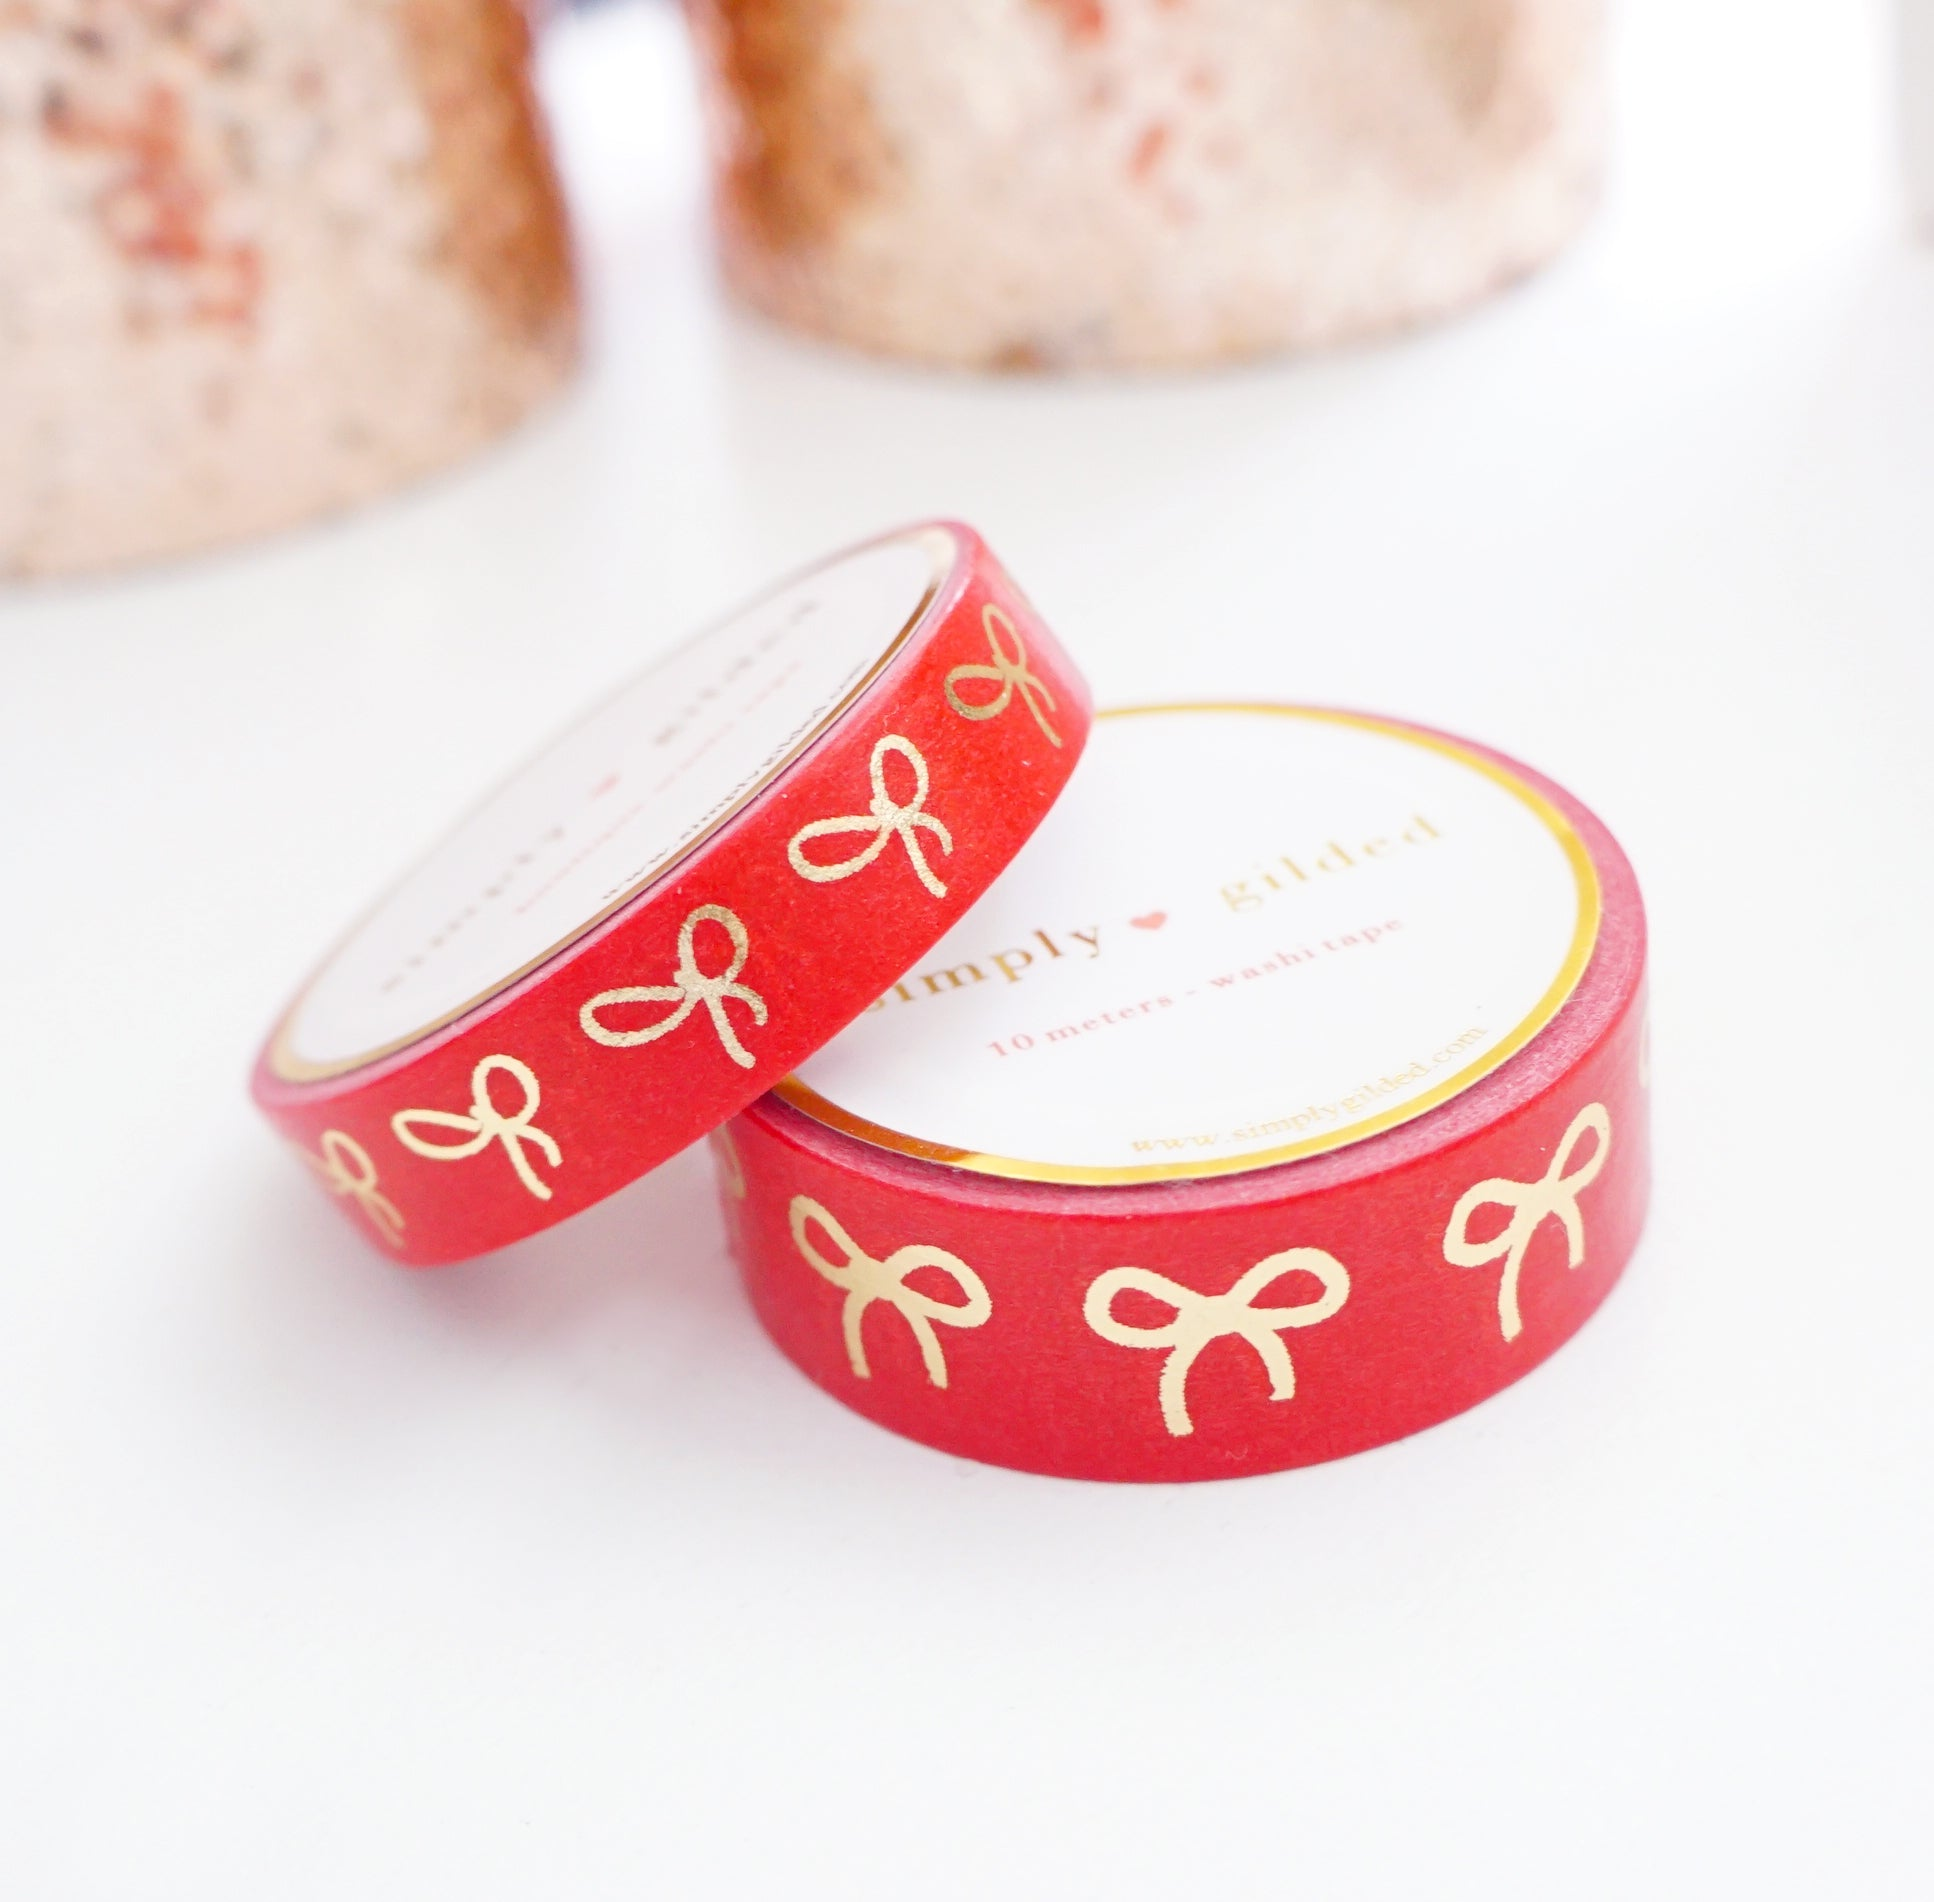 WASHI TAPE 15/10mm BOW set - Festive RED BOW + LIGHT GOLD foil (November 19 Holiday Release)